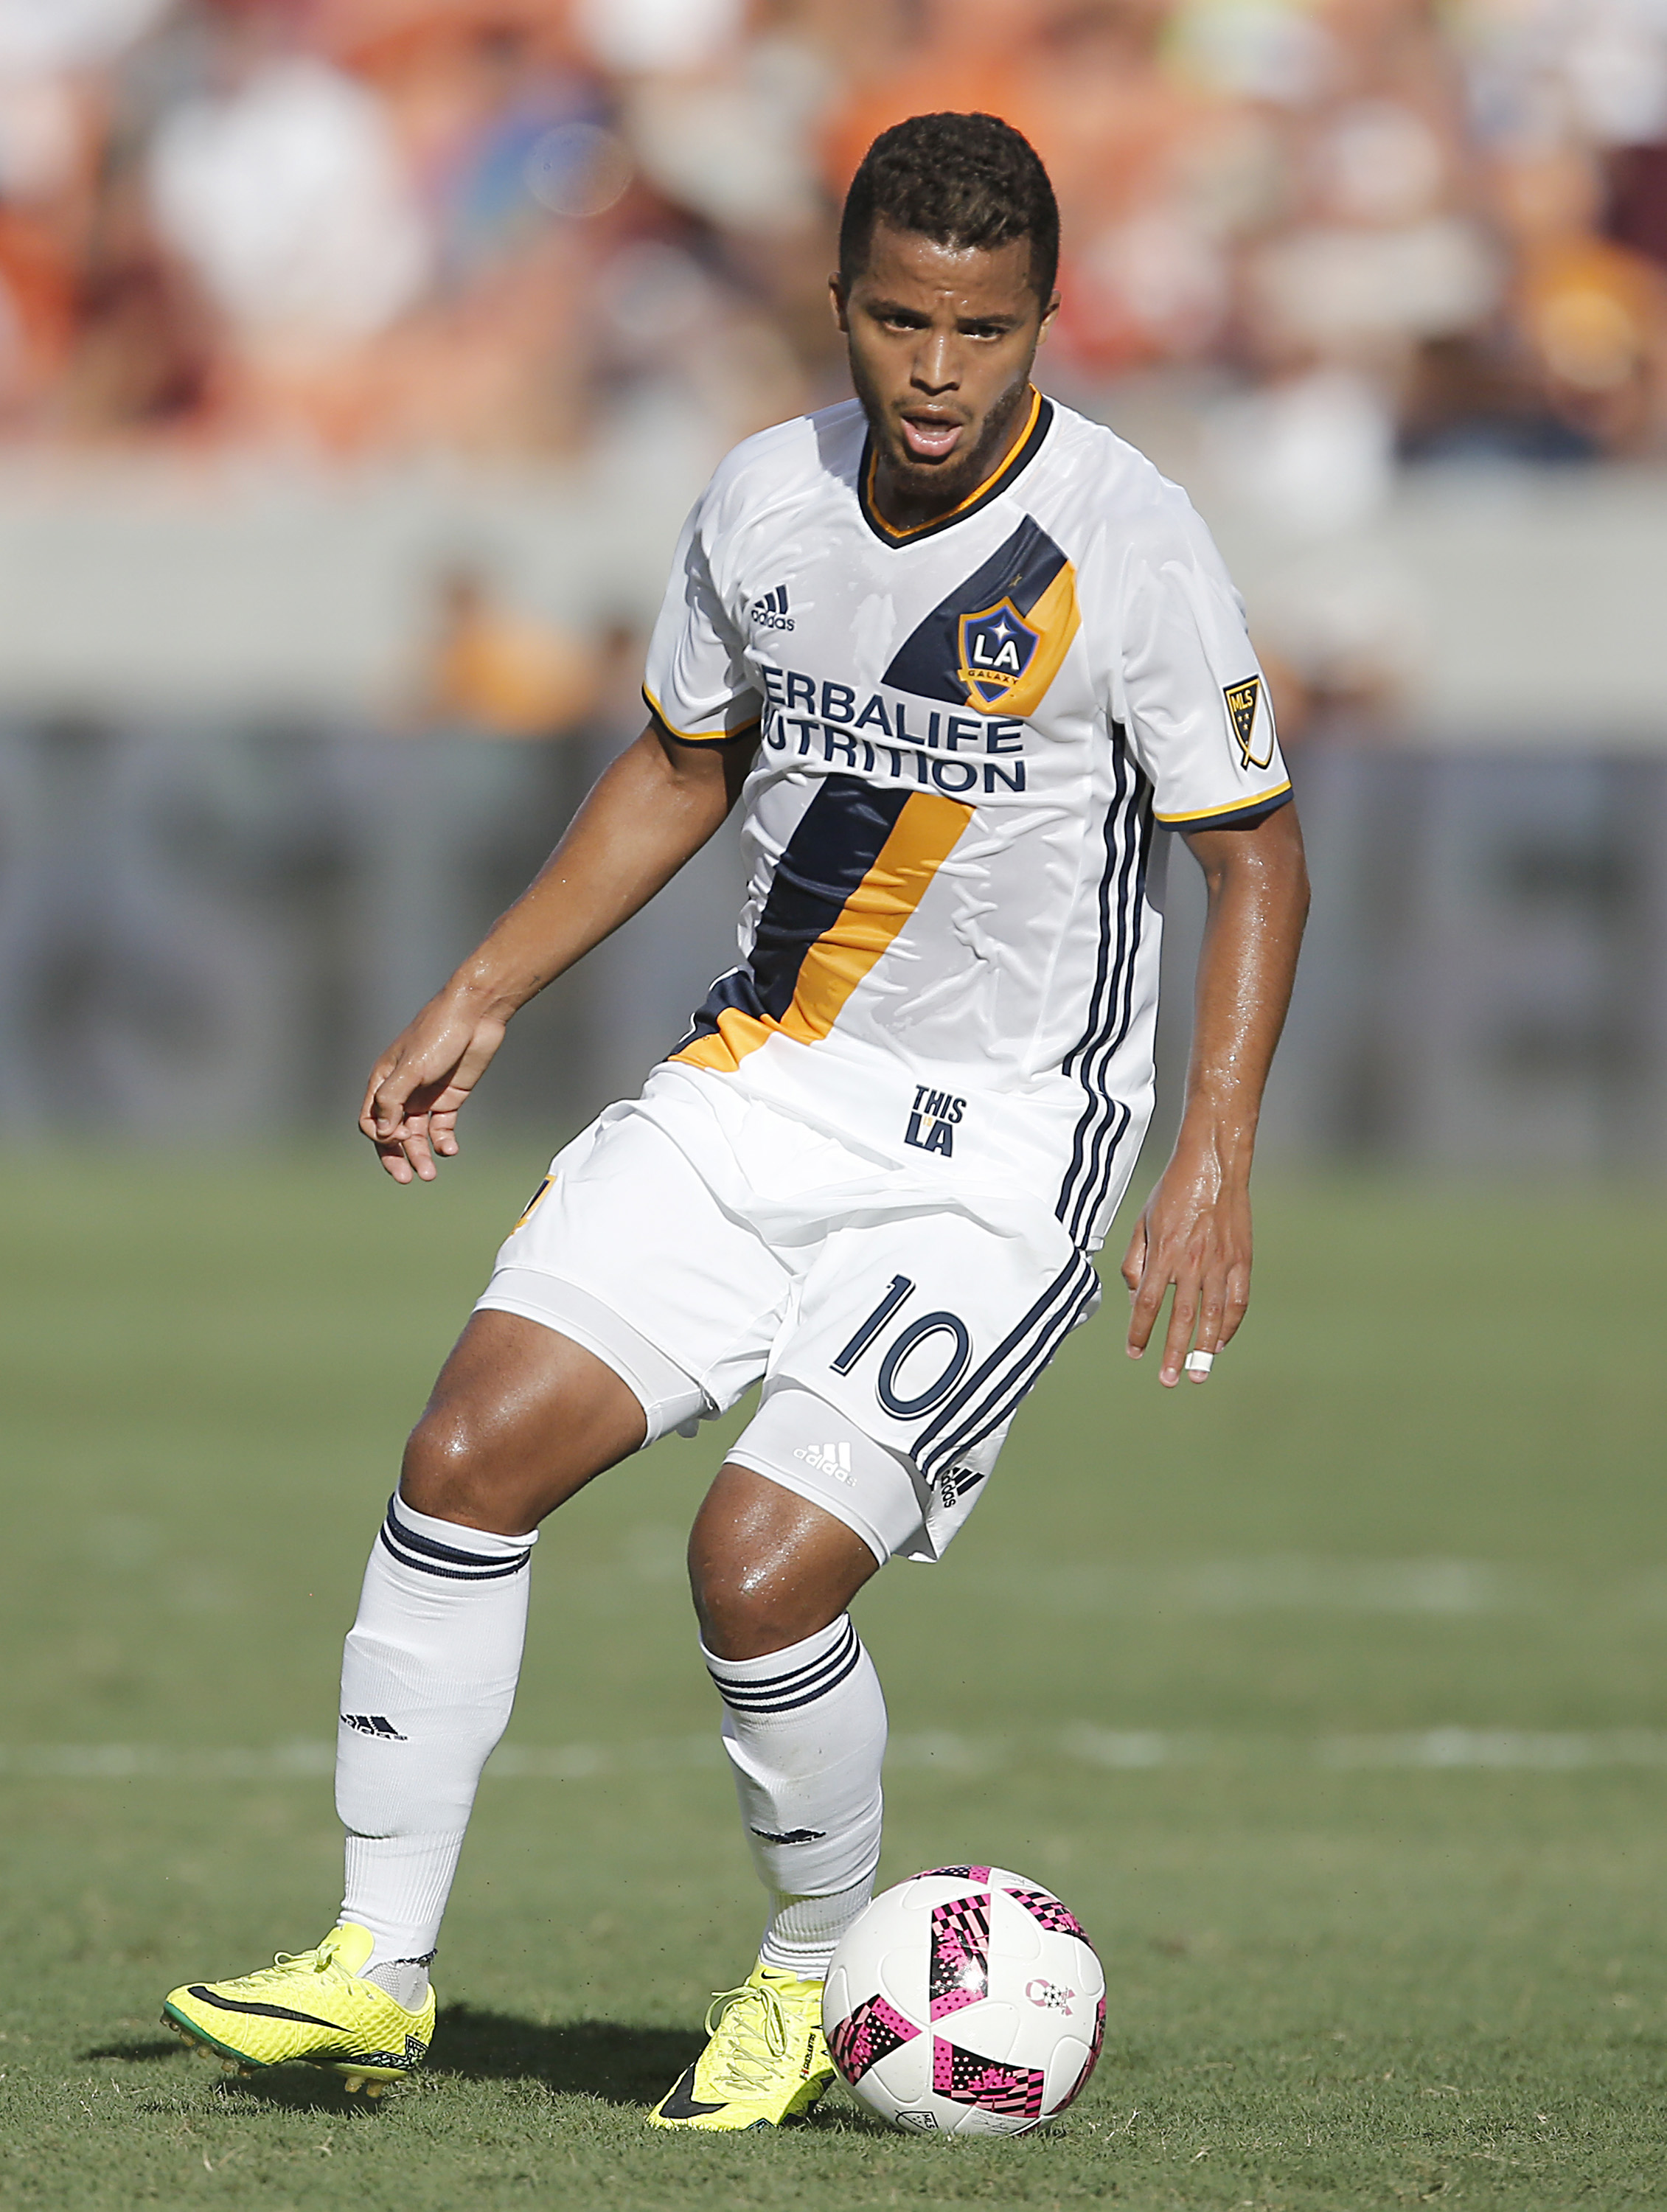 Oct 16, 2016; Houston, TX, USA; Los Angeles Galaxy forward Giovani dos Santos (10) dribbles against the Houston Dynamo in the first half at BBVA Compass Stadium. Mandatory Credit: Thomas B. Shea-USA TODAY Sports